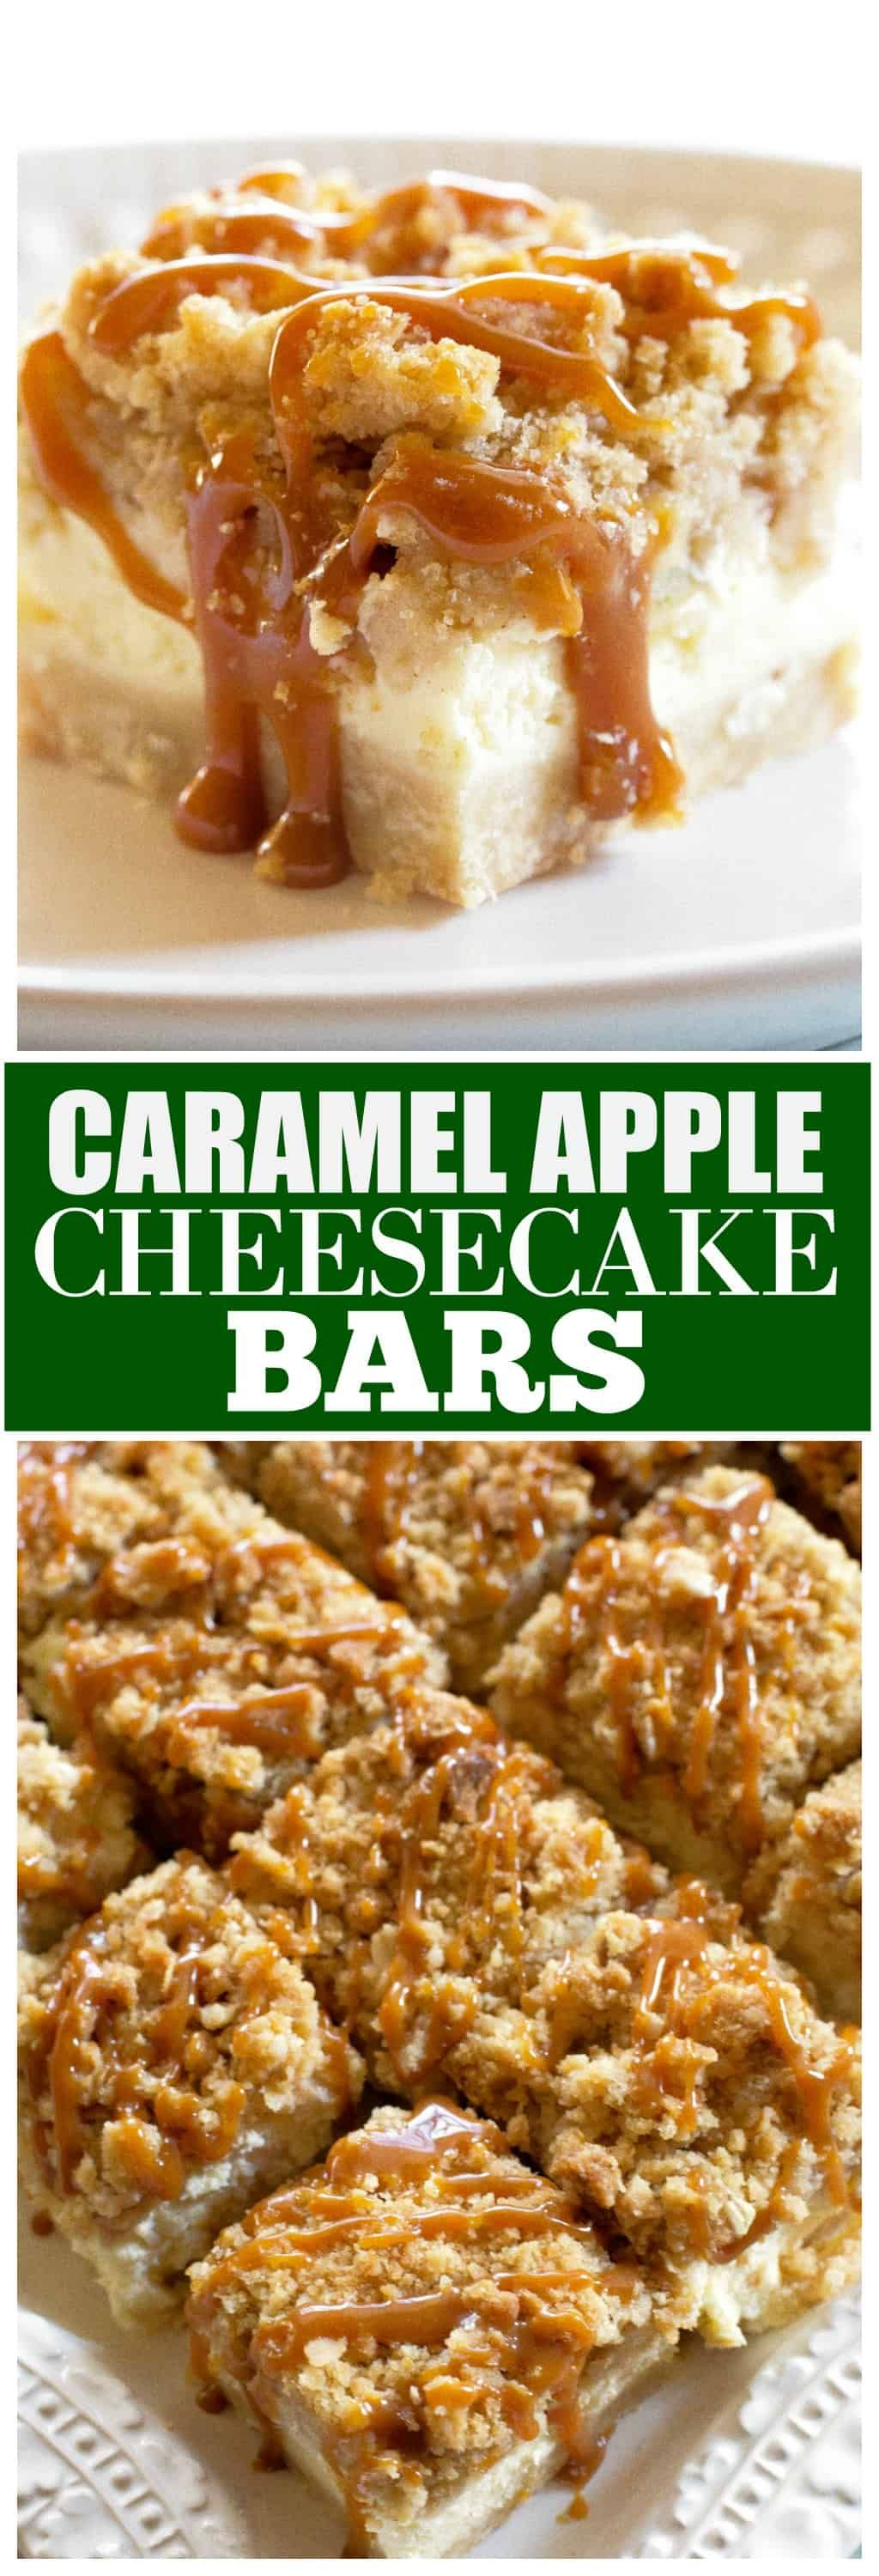 Caramel Apple Cheesecake Bars - These have a shortbread crust and a thick cheesecake layer!